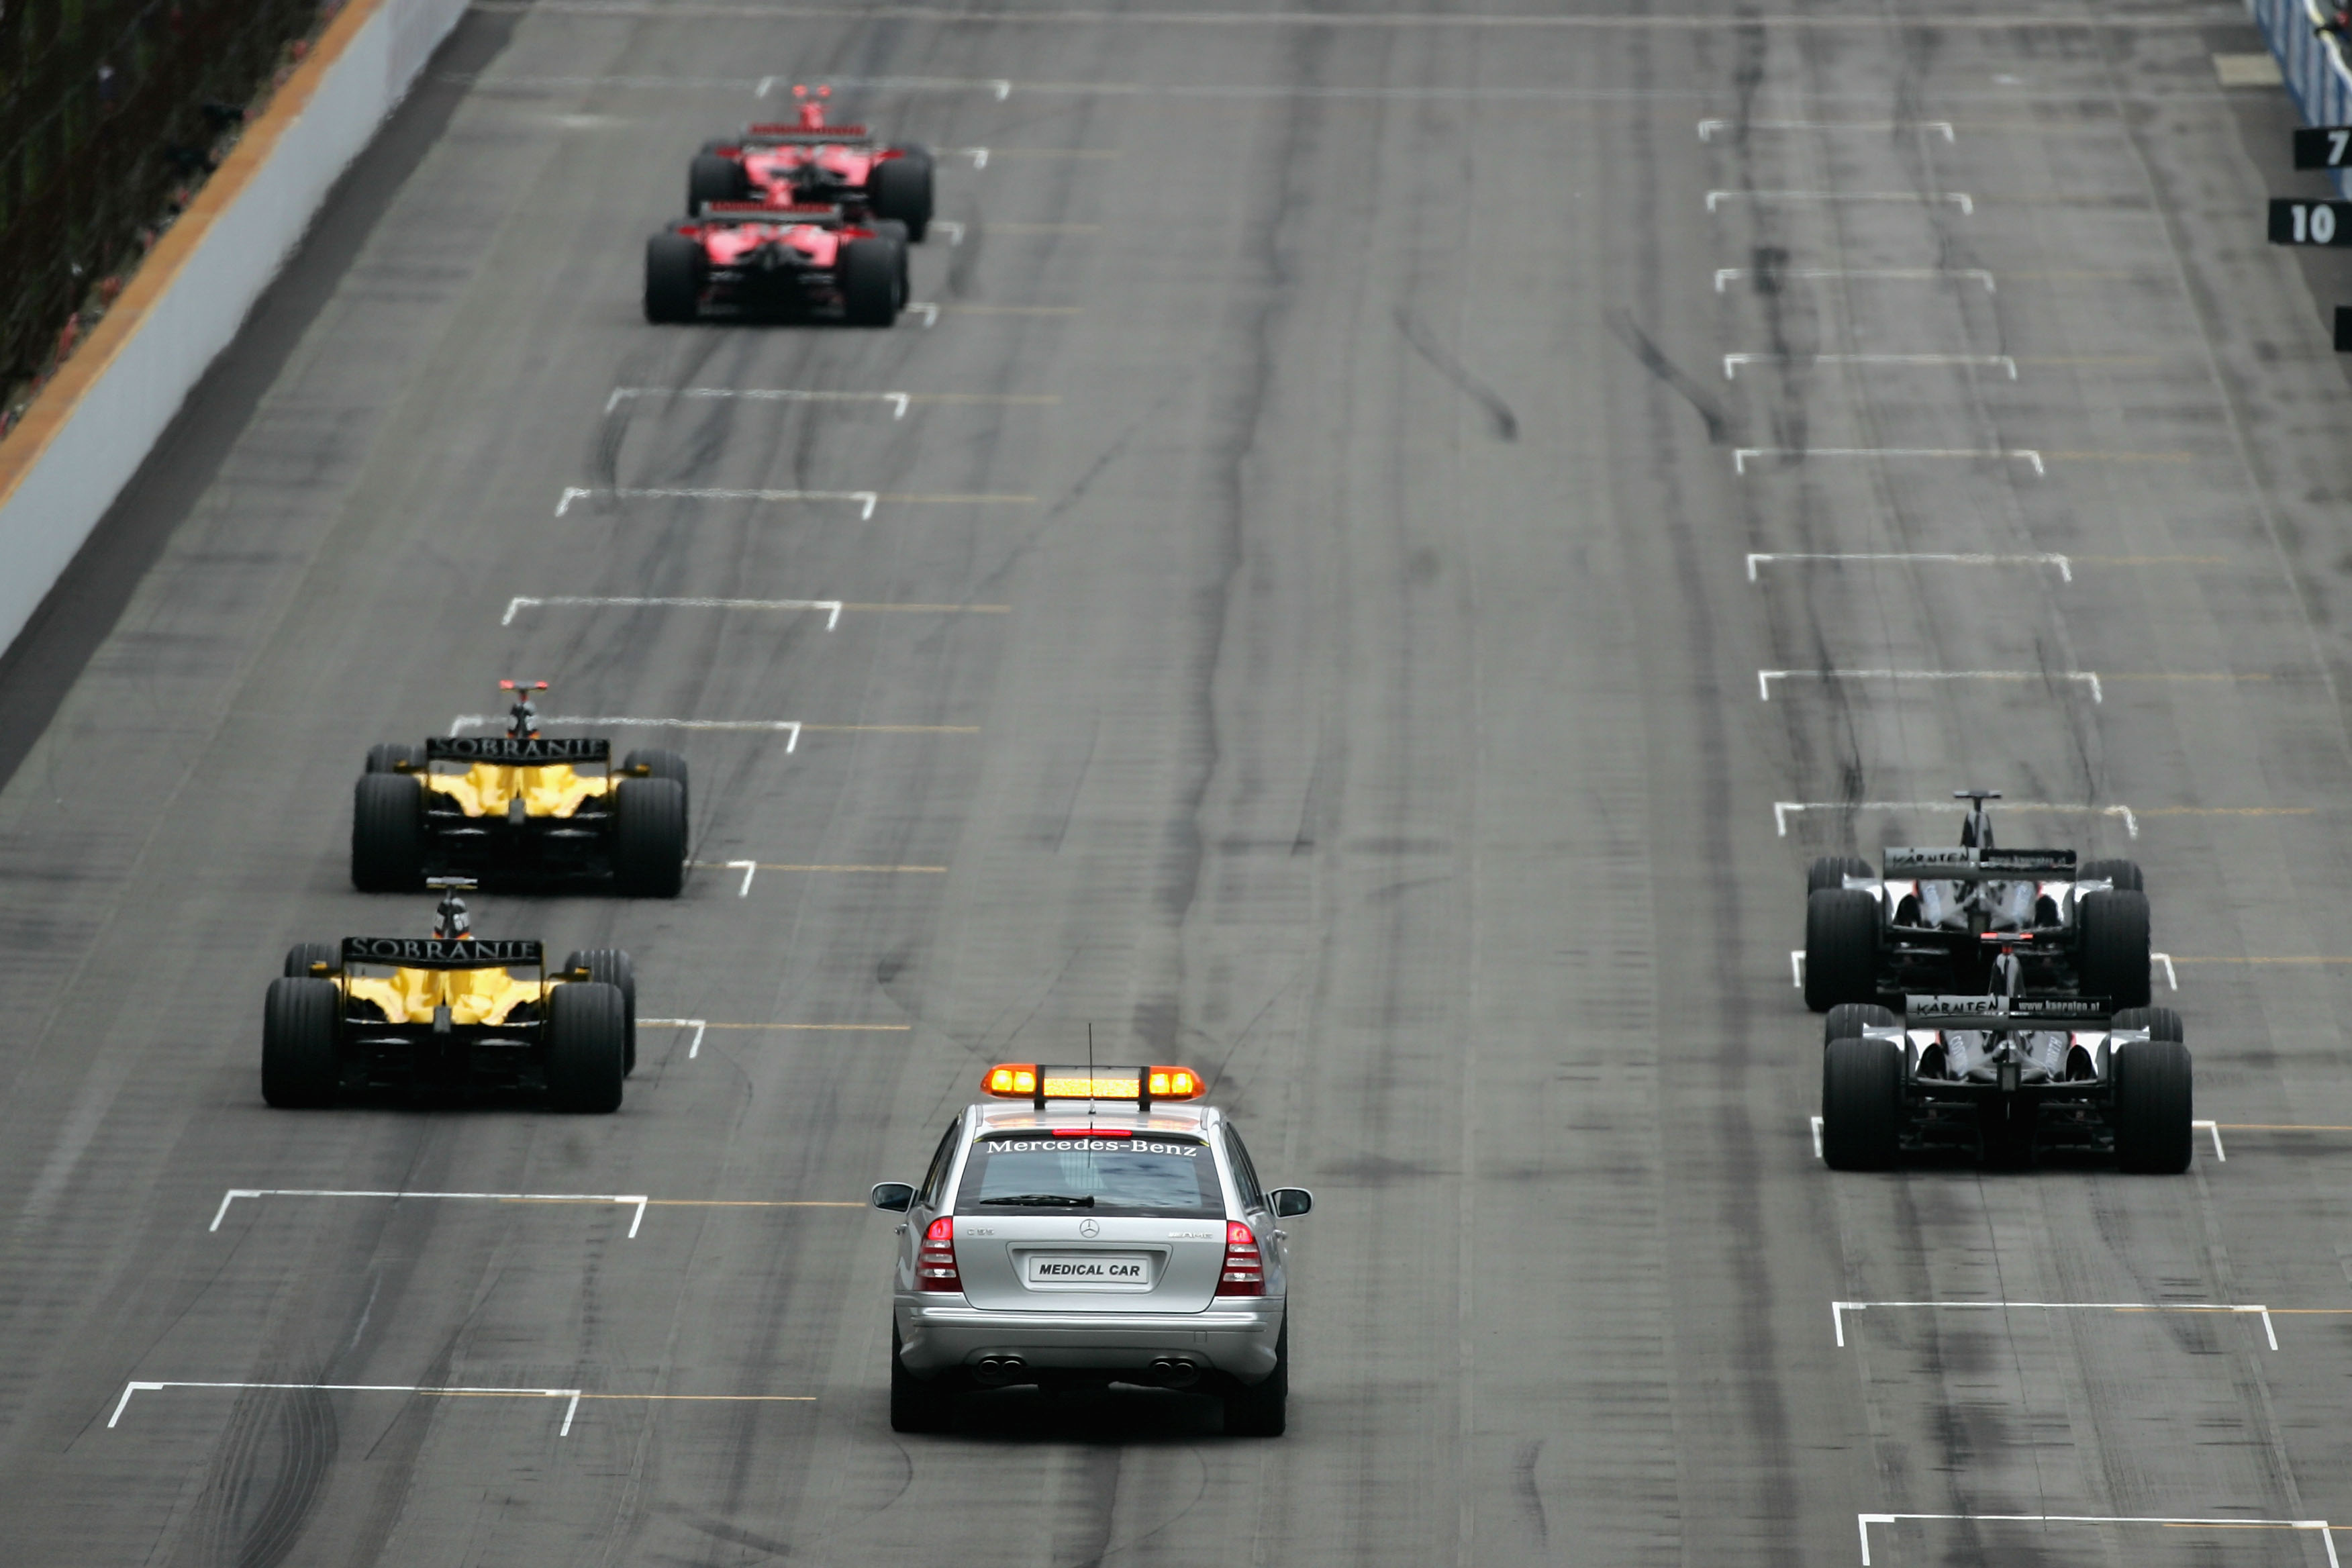 Only six cars lined up on the grid for the 2005 US Grand Prix  in Indianapolis.